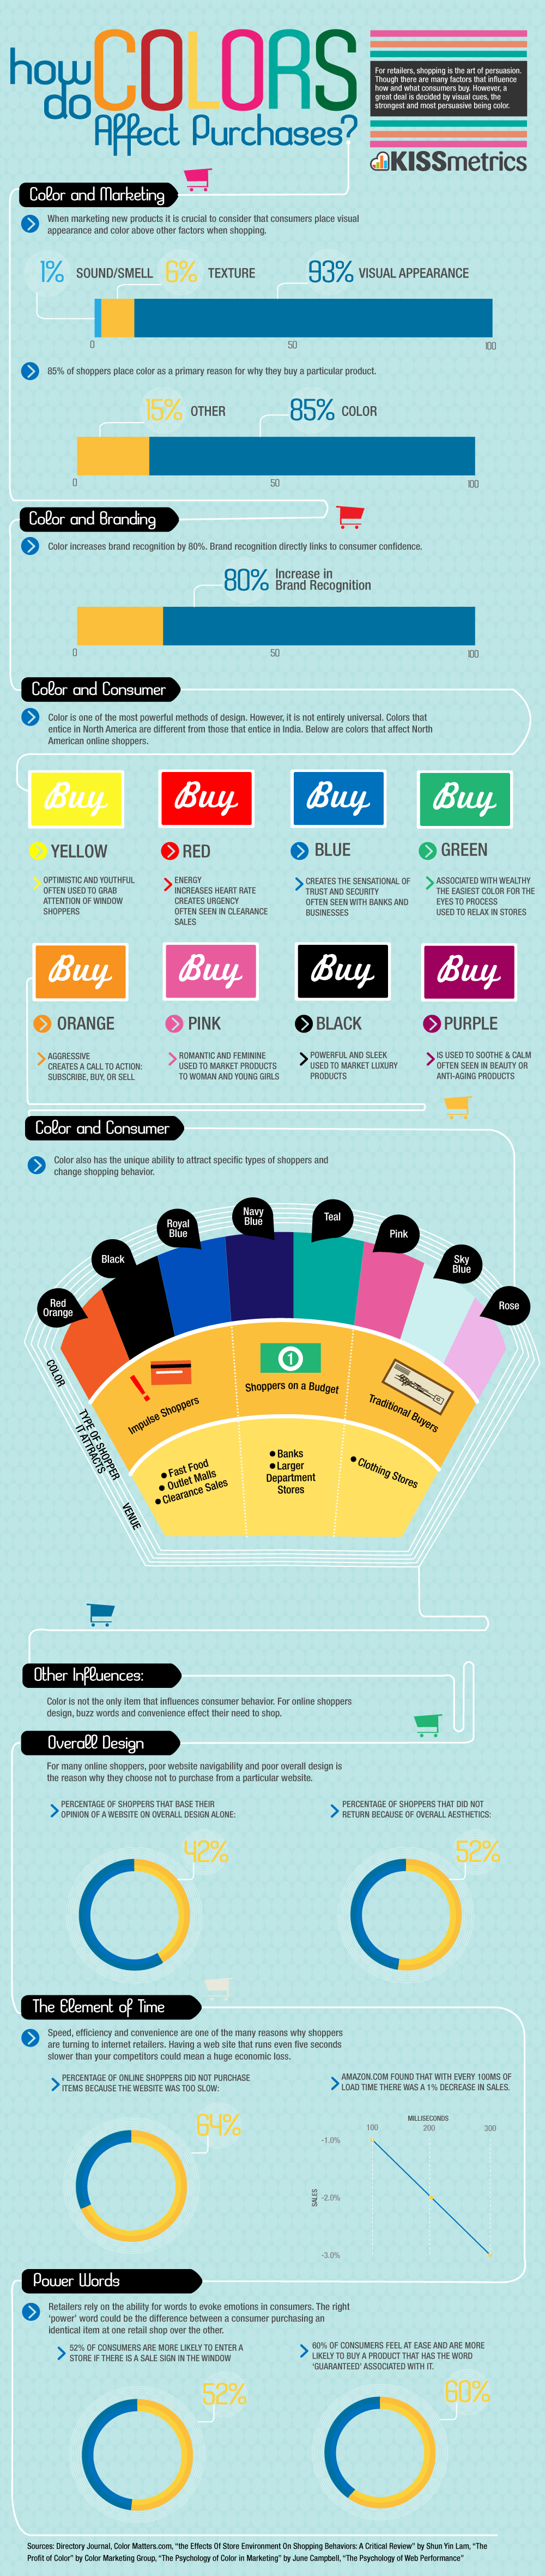 infographic how do colors affect purchases